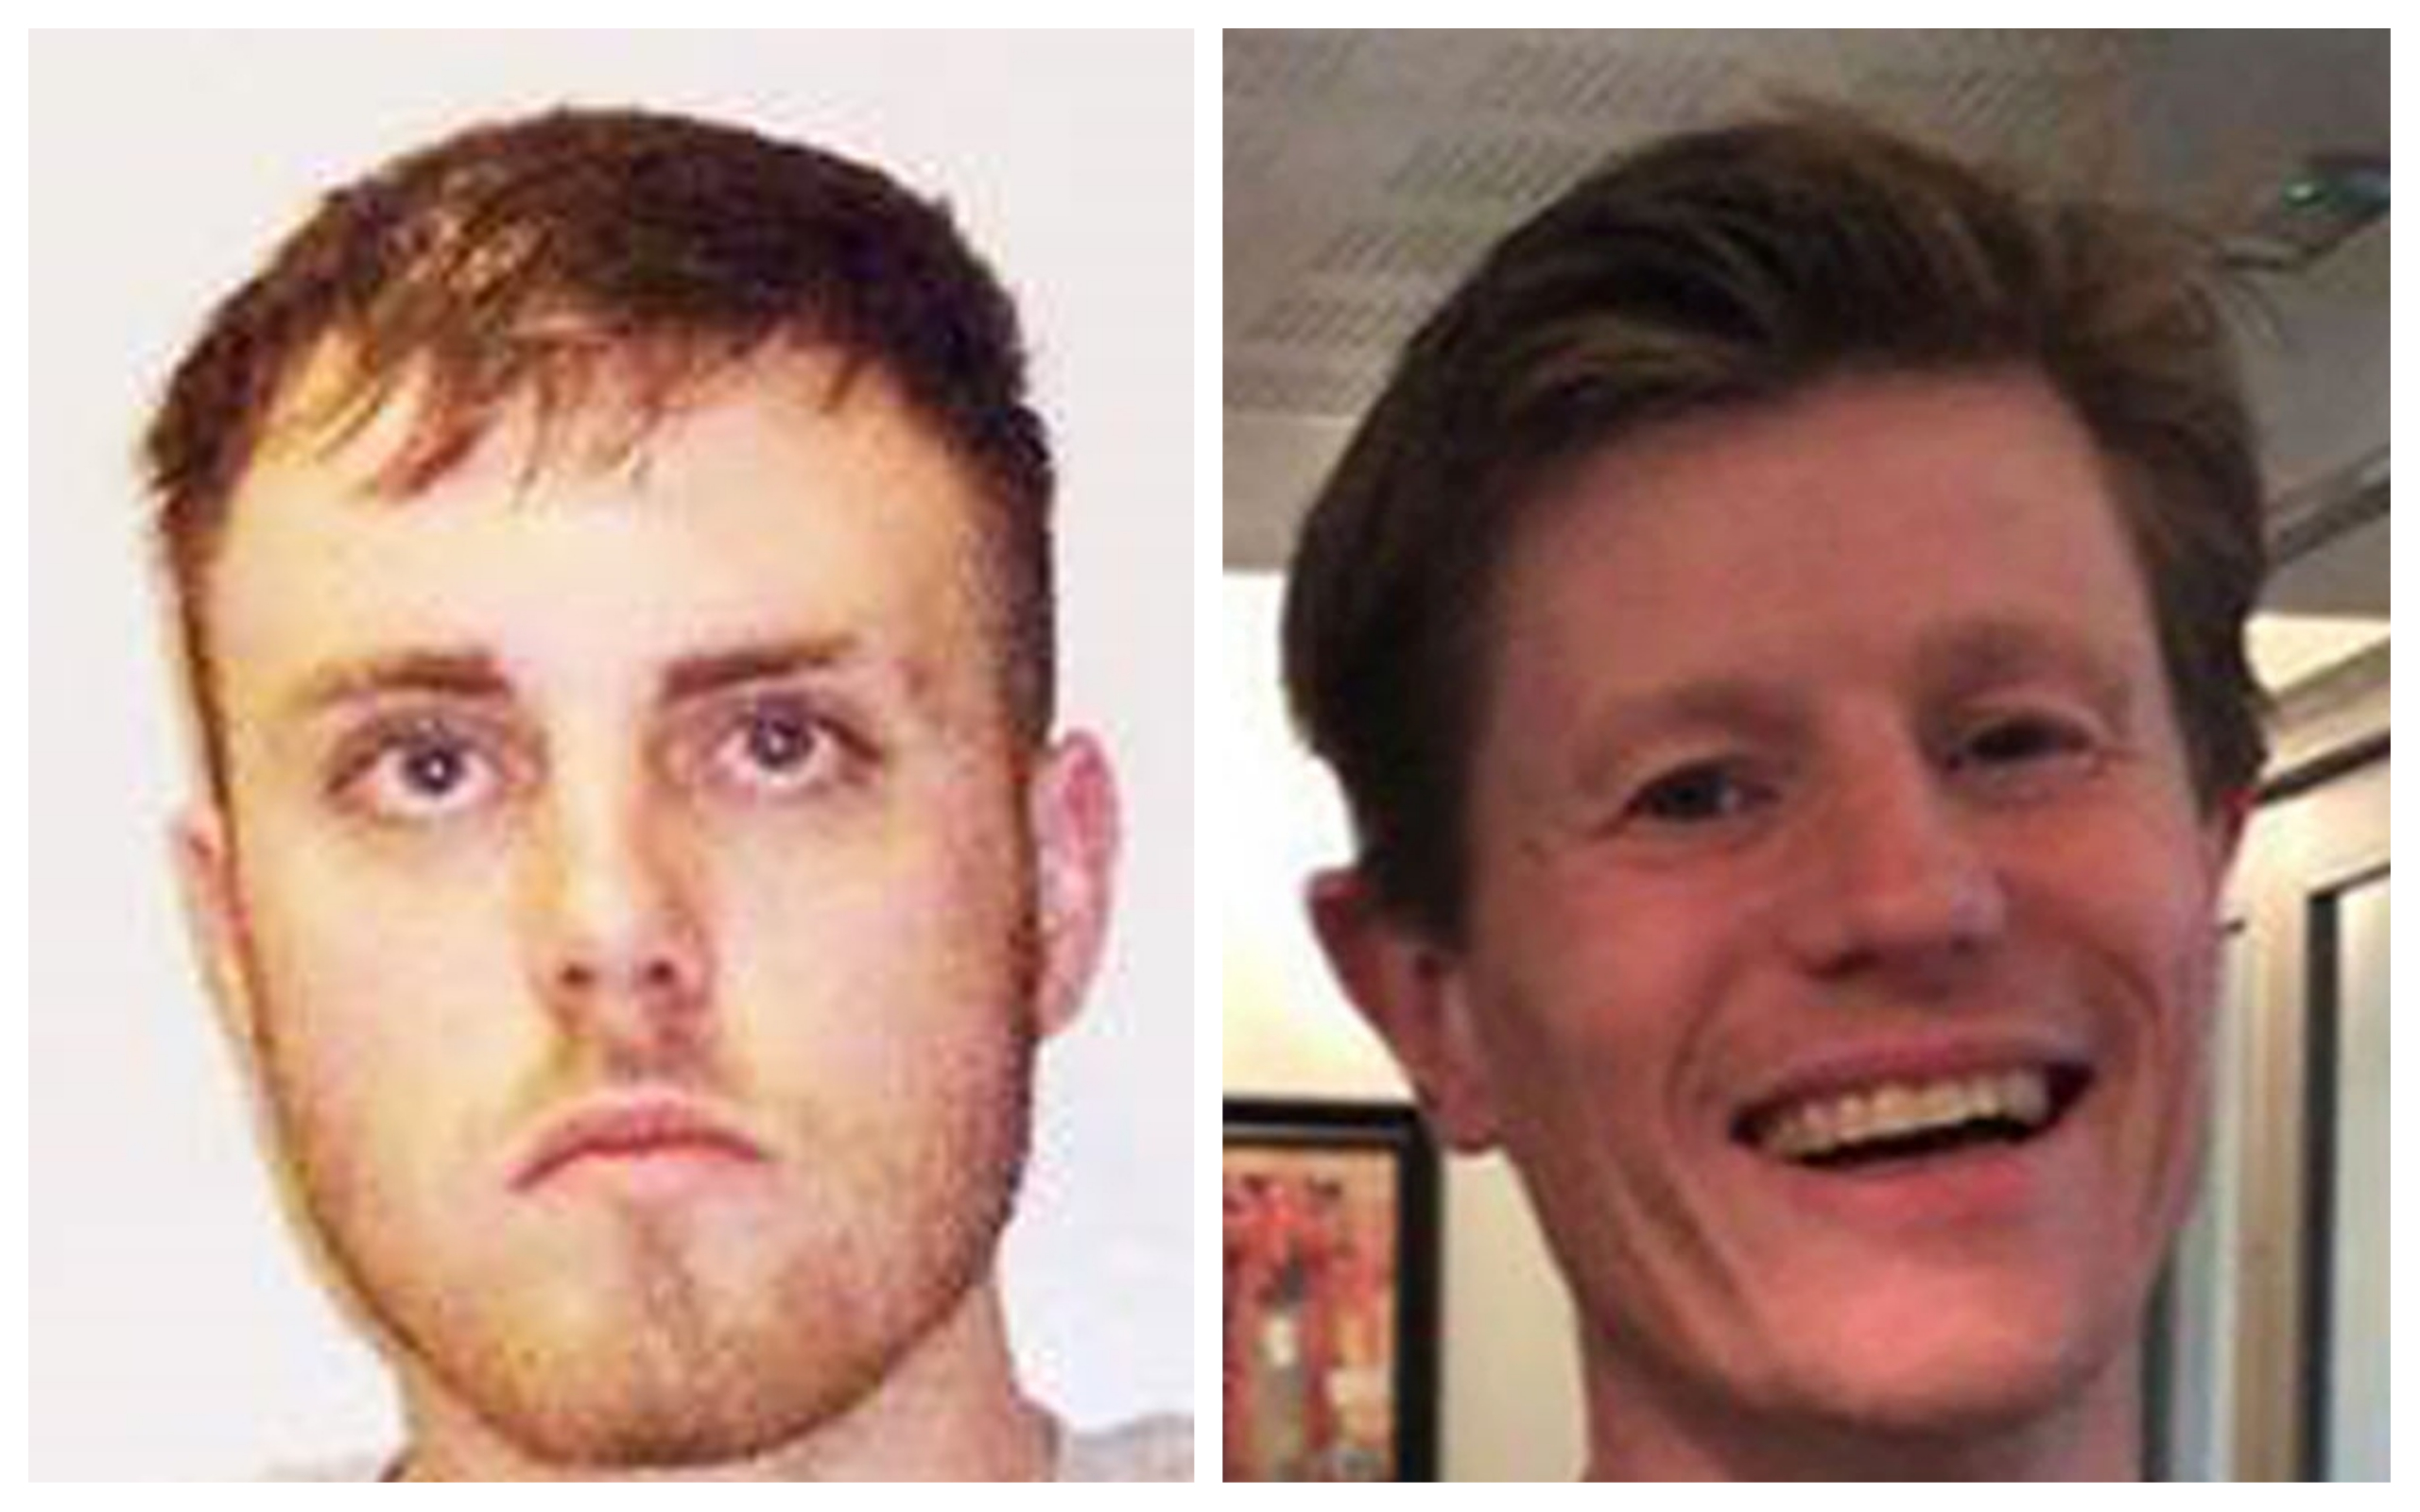 Liam Hay, left, admitted murdering father-of-two Anthony McGladrigan during a drug-fuelled attack at his home